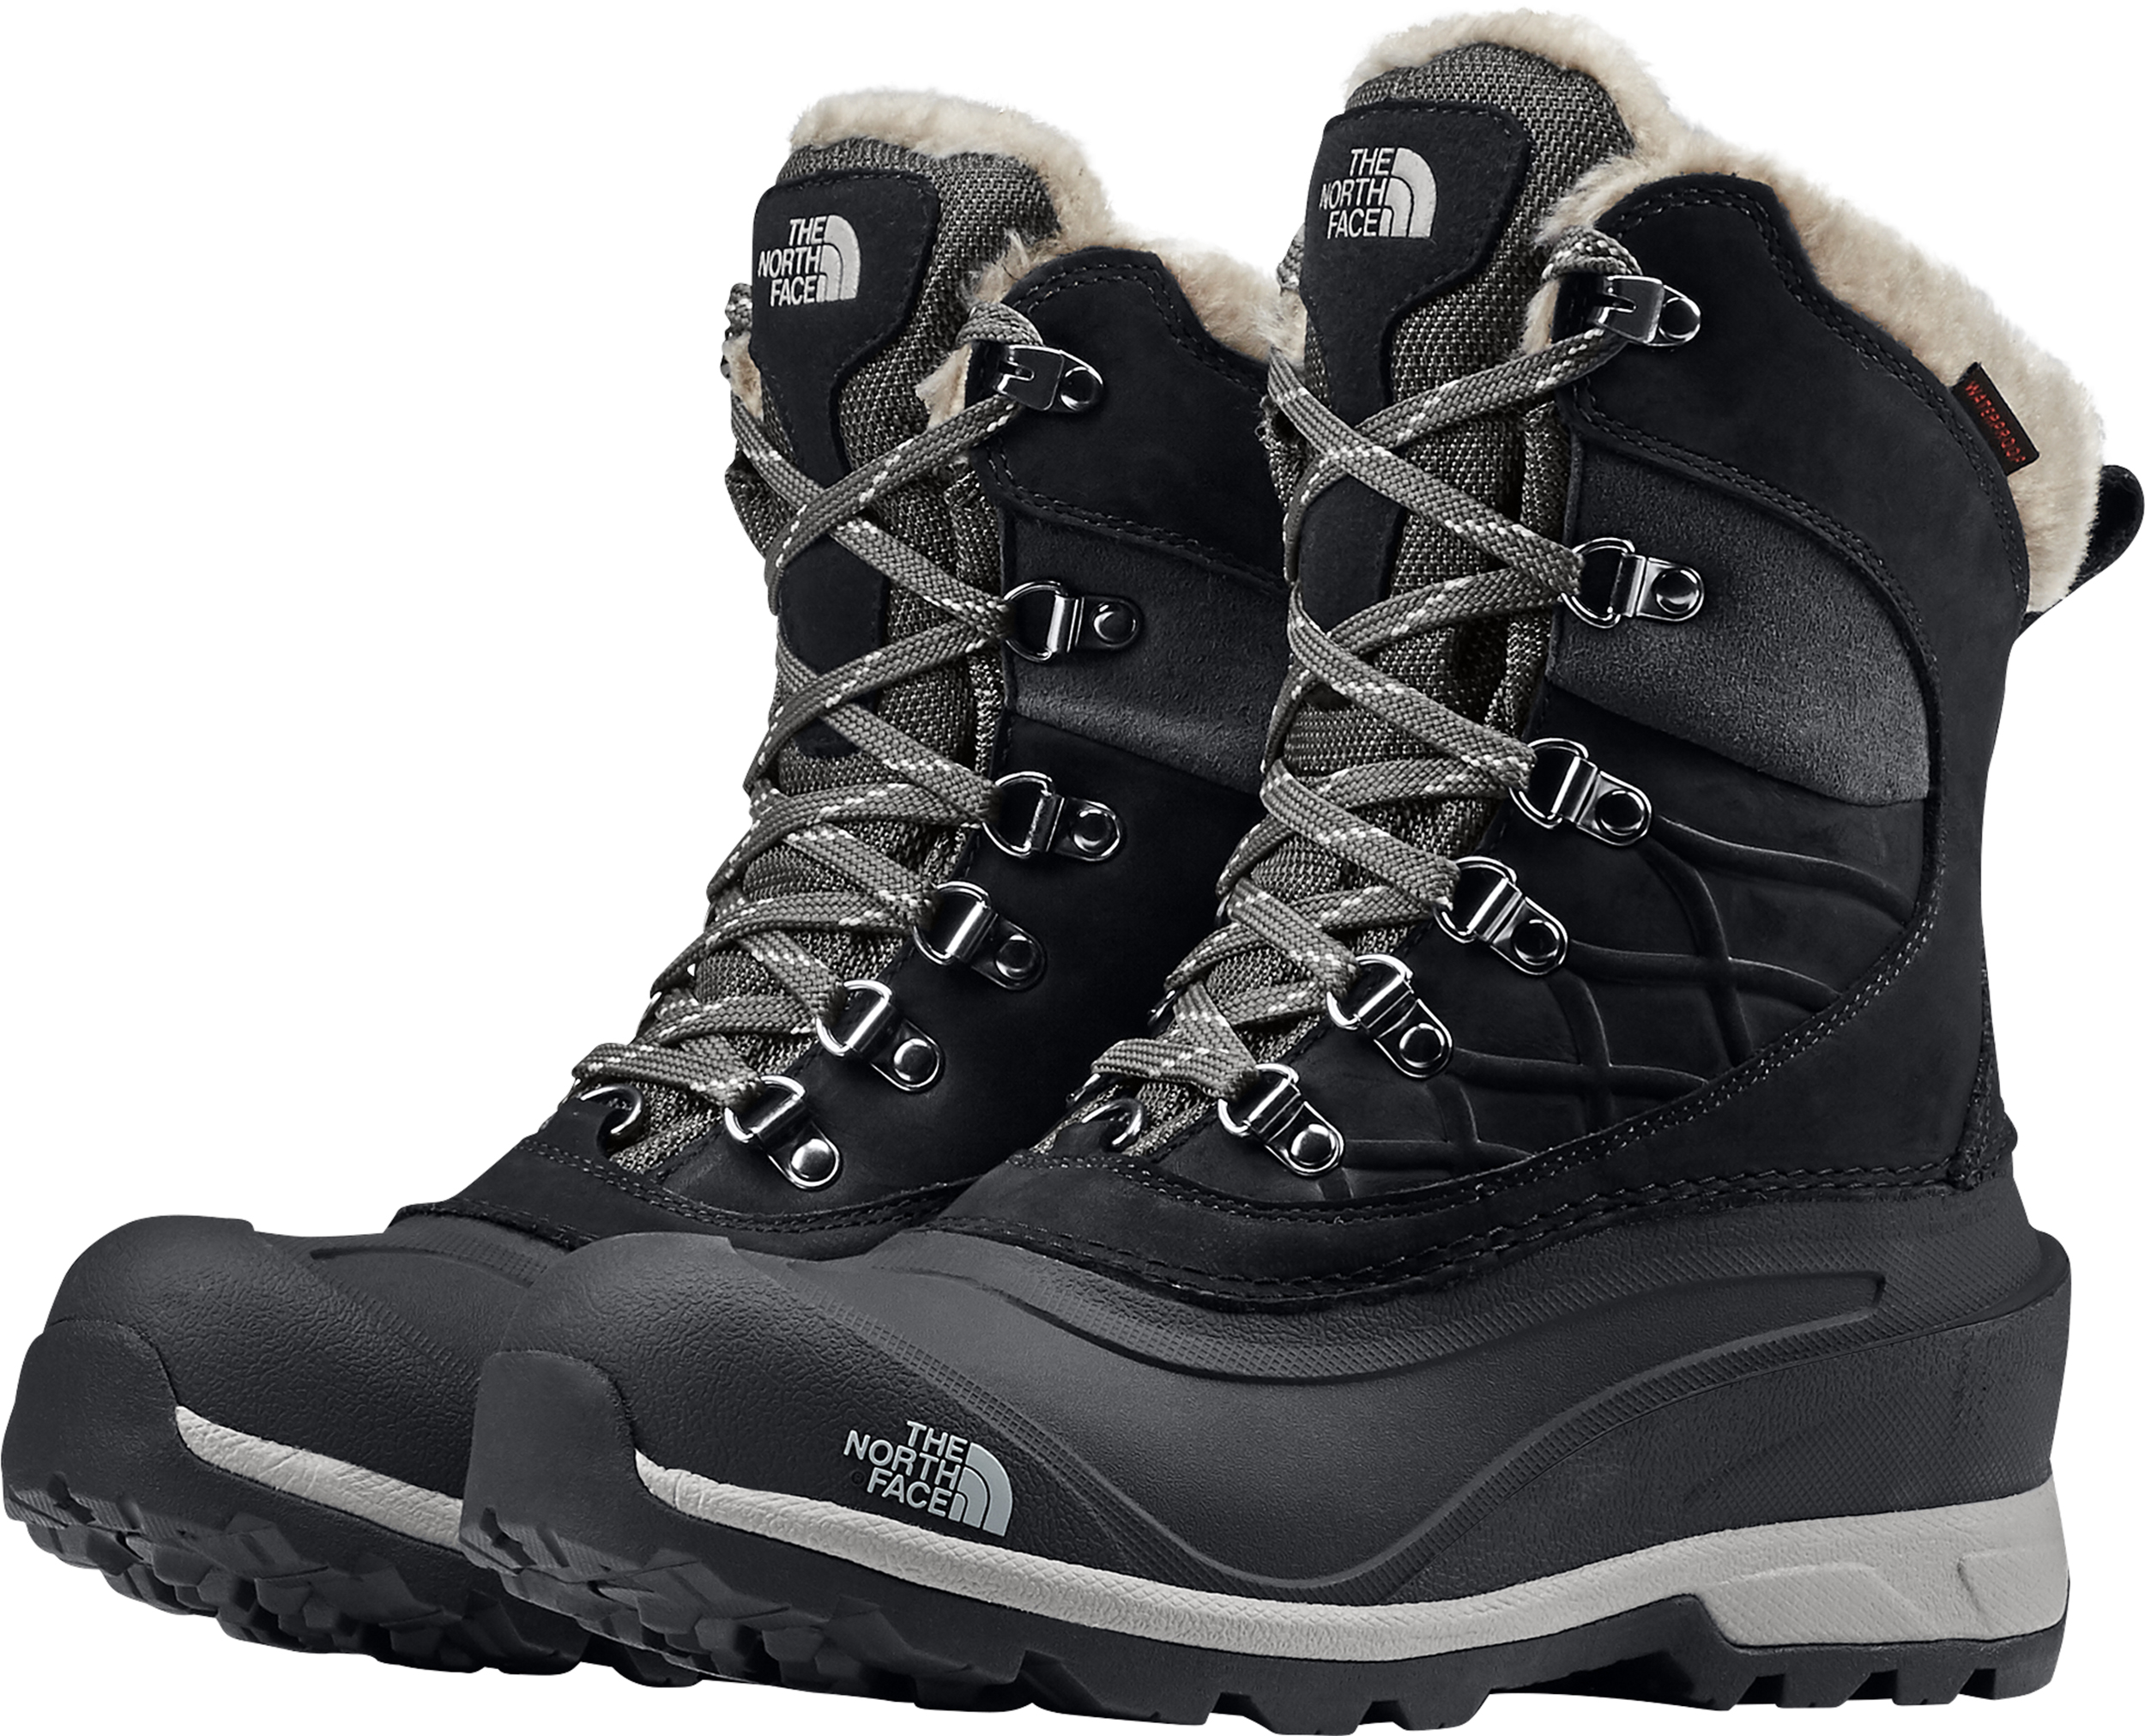 456e25b91 The North Face Chilkat 400 Winter Boots - Women's